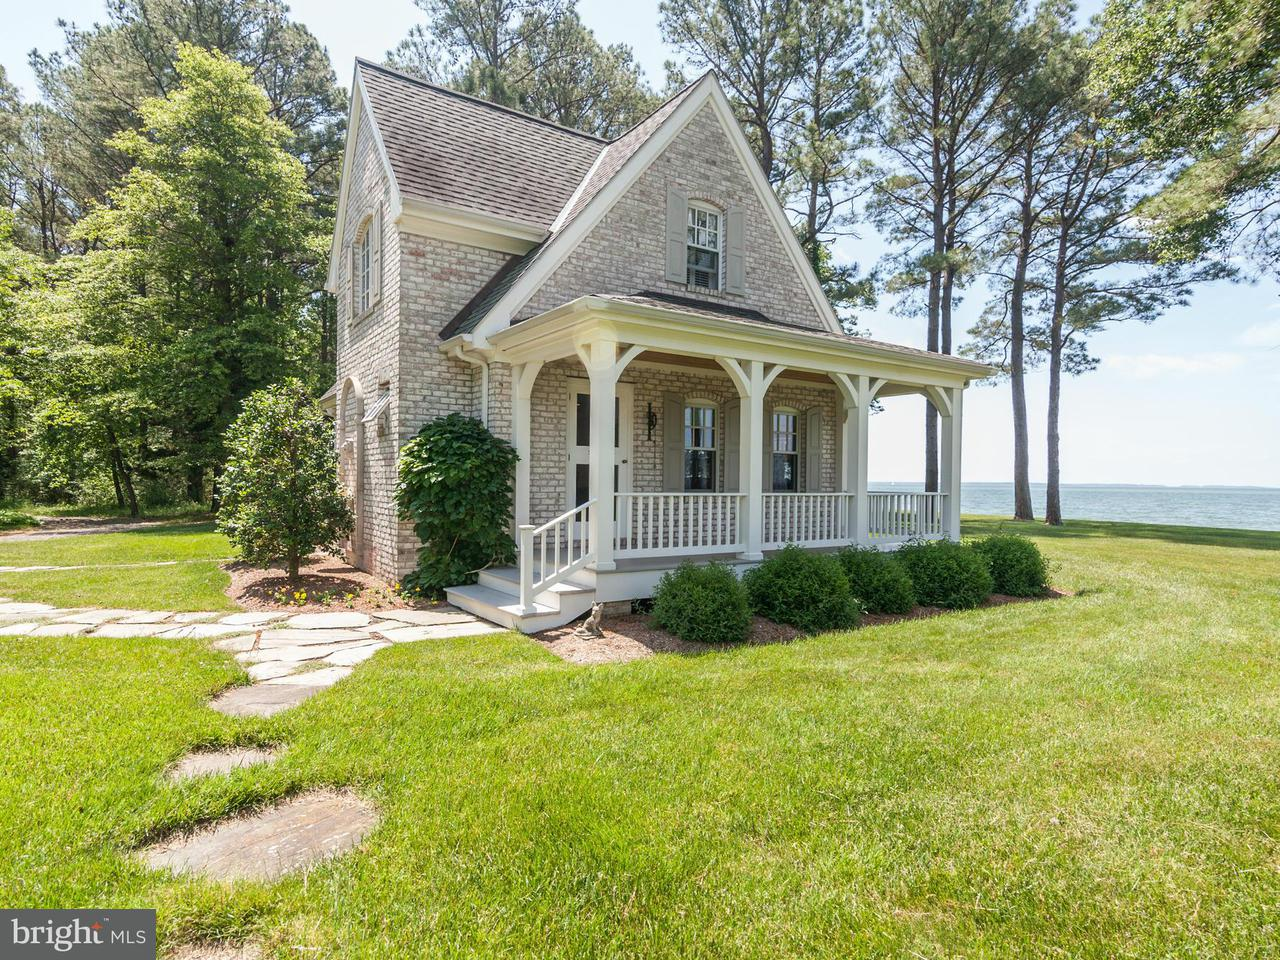 Additional photo for property listing at 4784 FERRY NECK Road 4784 FERRY NECK Road Royal Oak, Maryland 21662 Estados Unidos